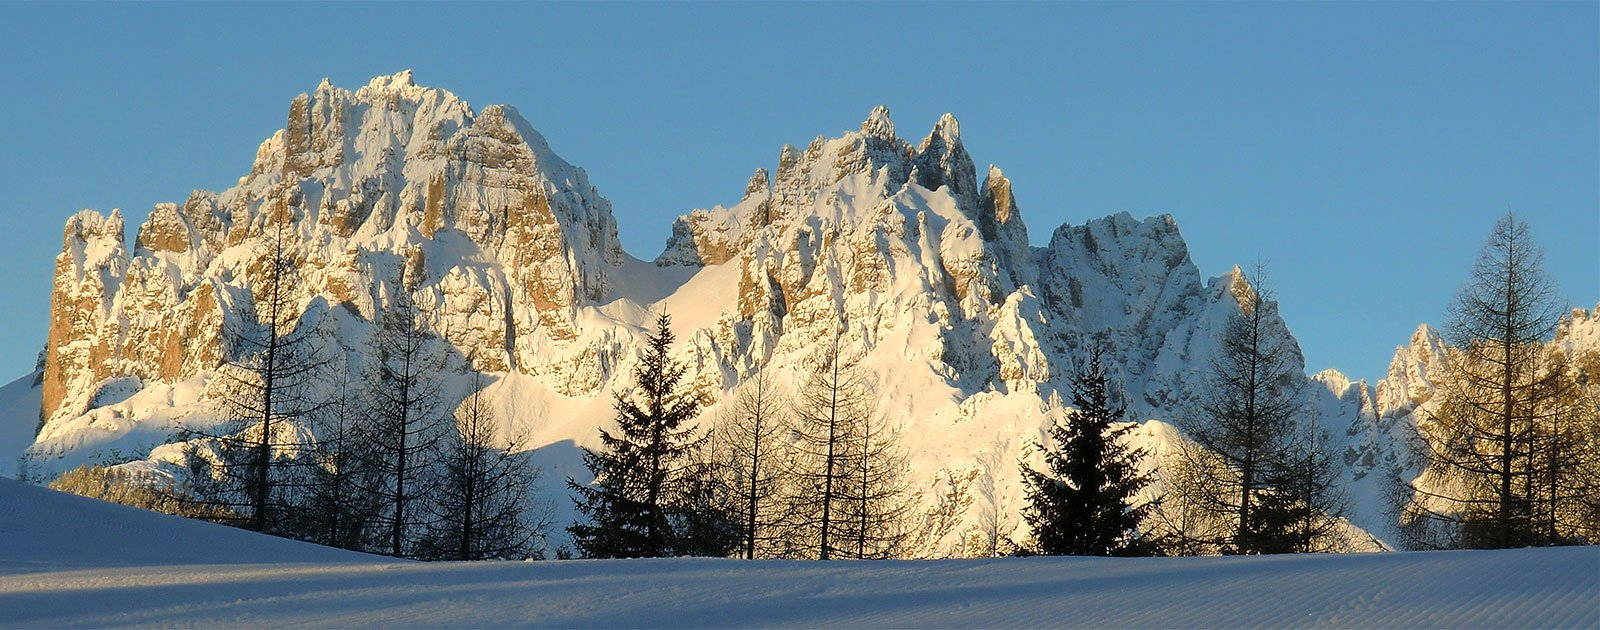 Dolomitenpanorama im Winter